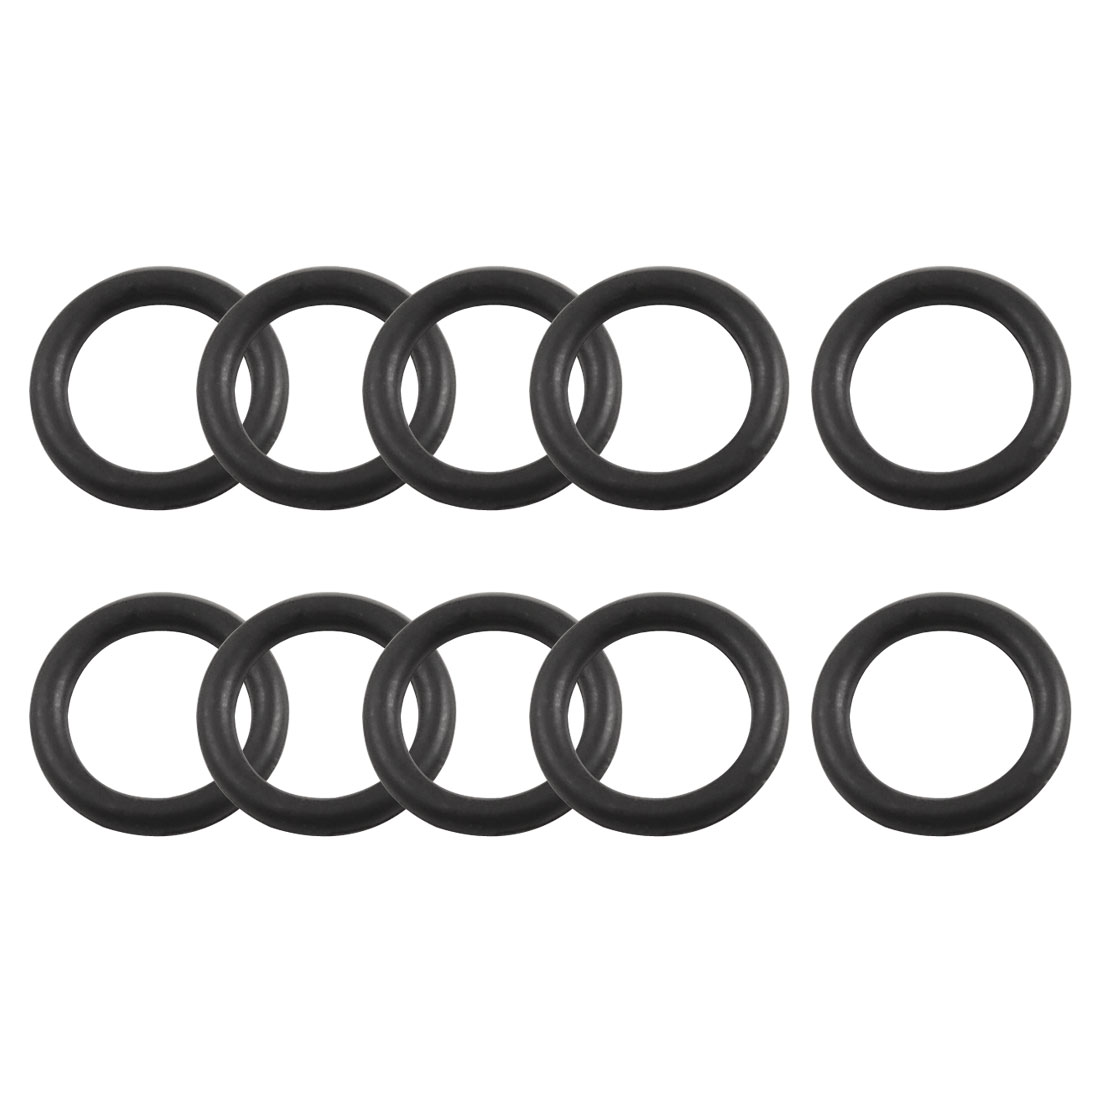 10 Pcs Black Rubber O Ring Oil Seal Sealing Gasket 6.3mm x 1.8mm